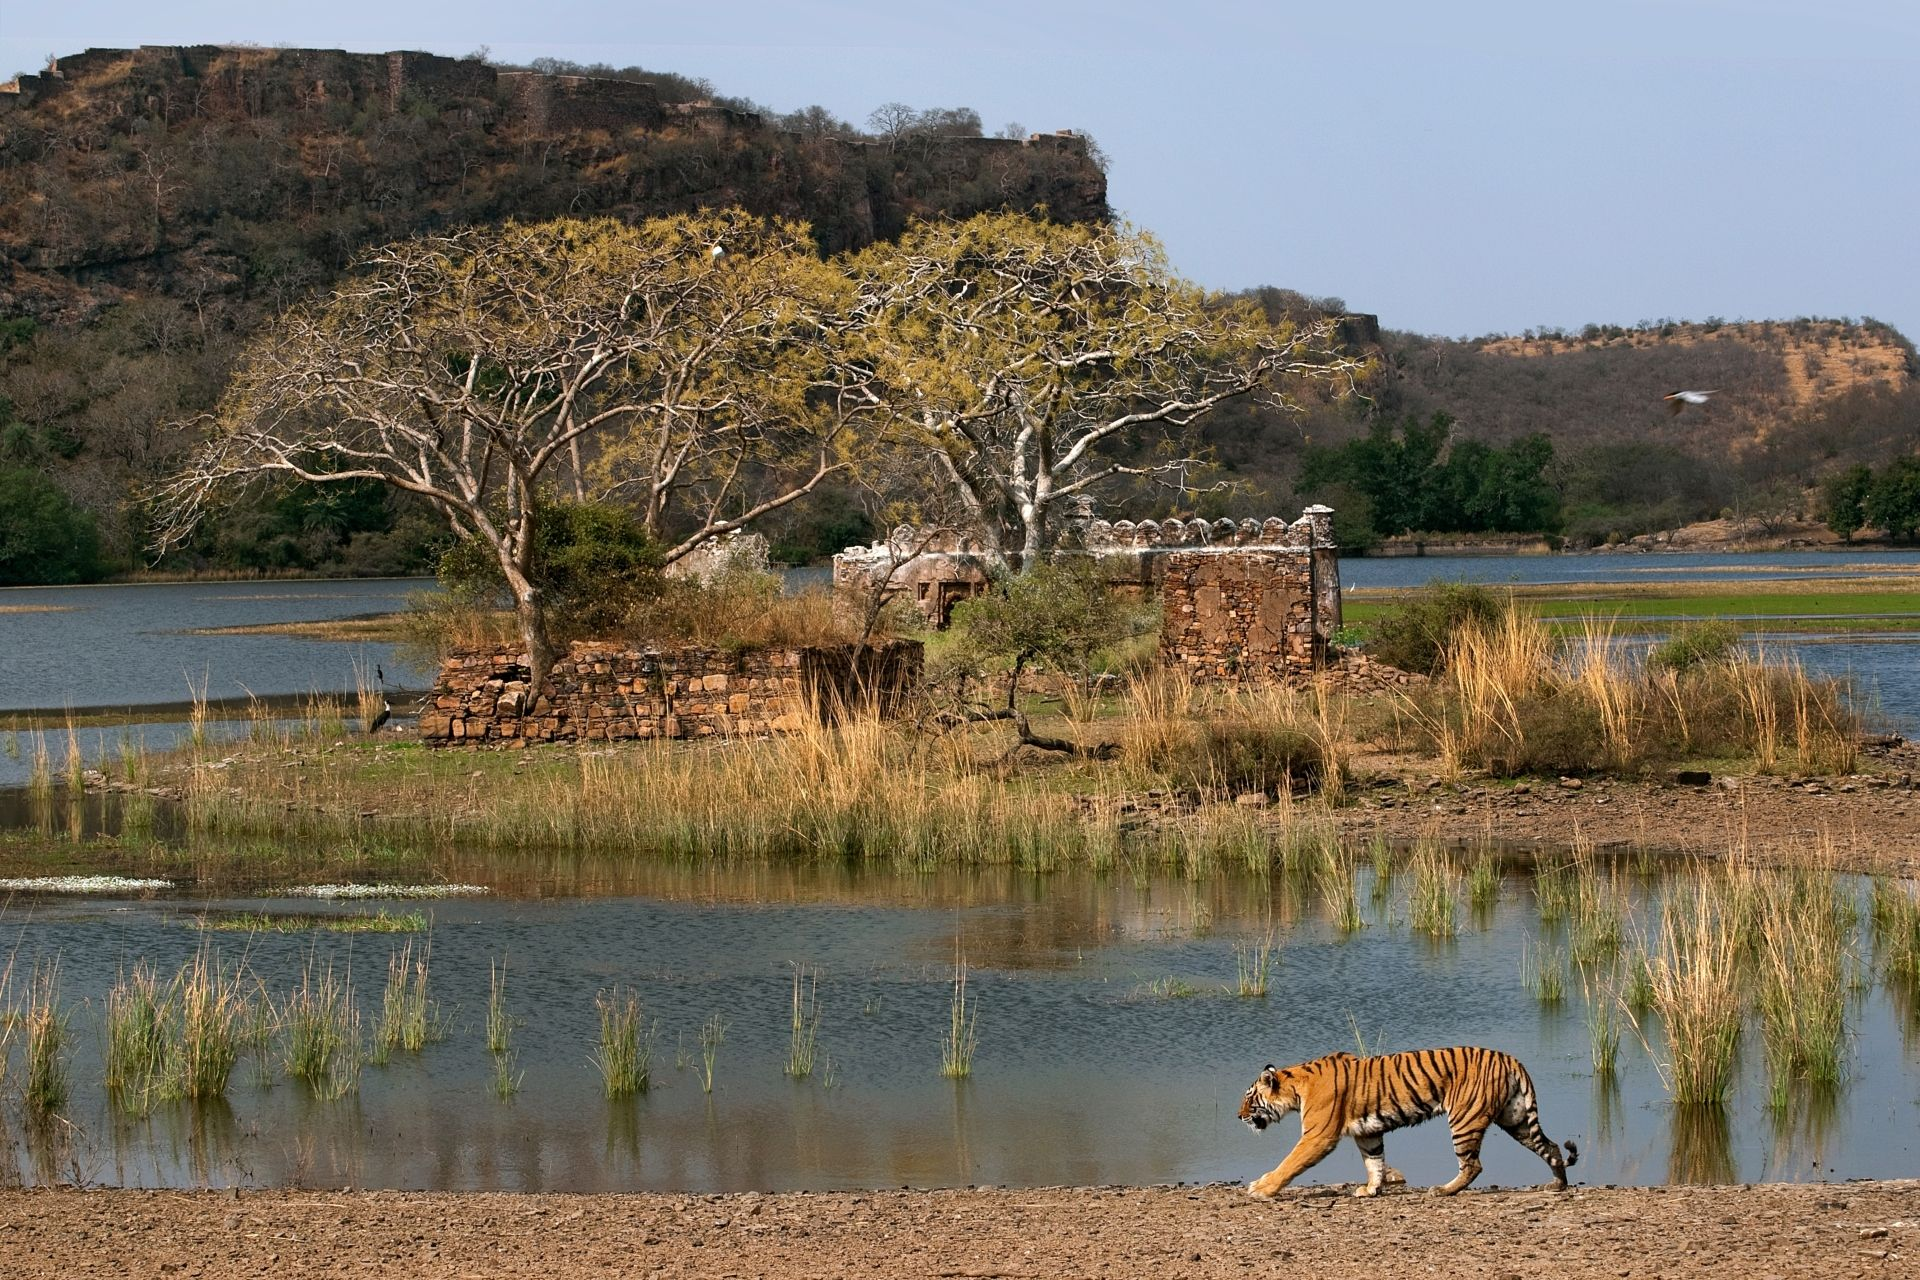 SUJAN Sher Bagh – Tiger with Ranthambore fort in background